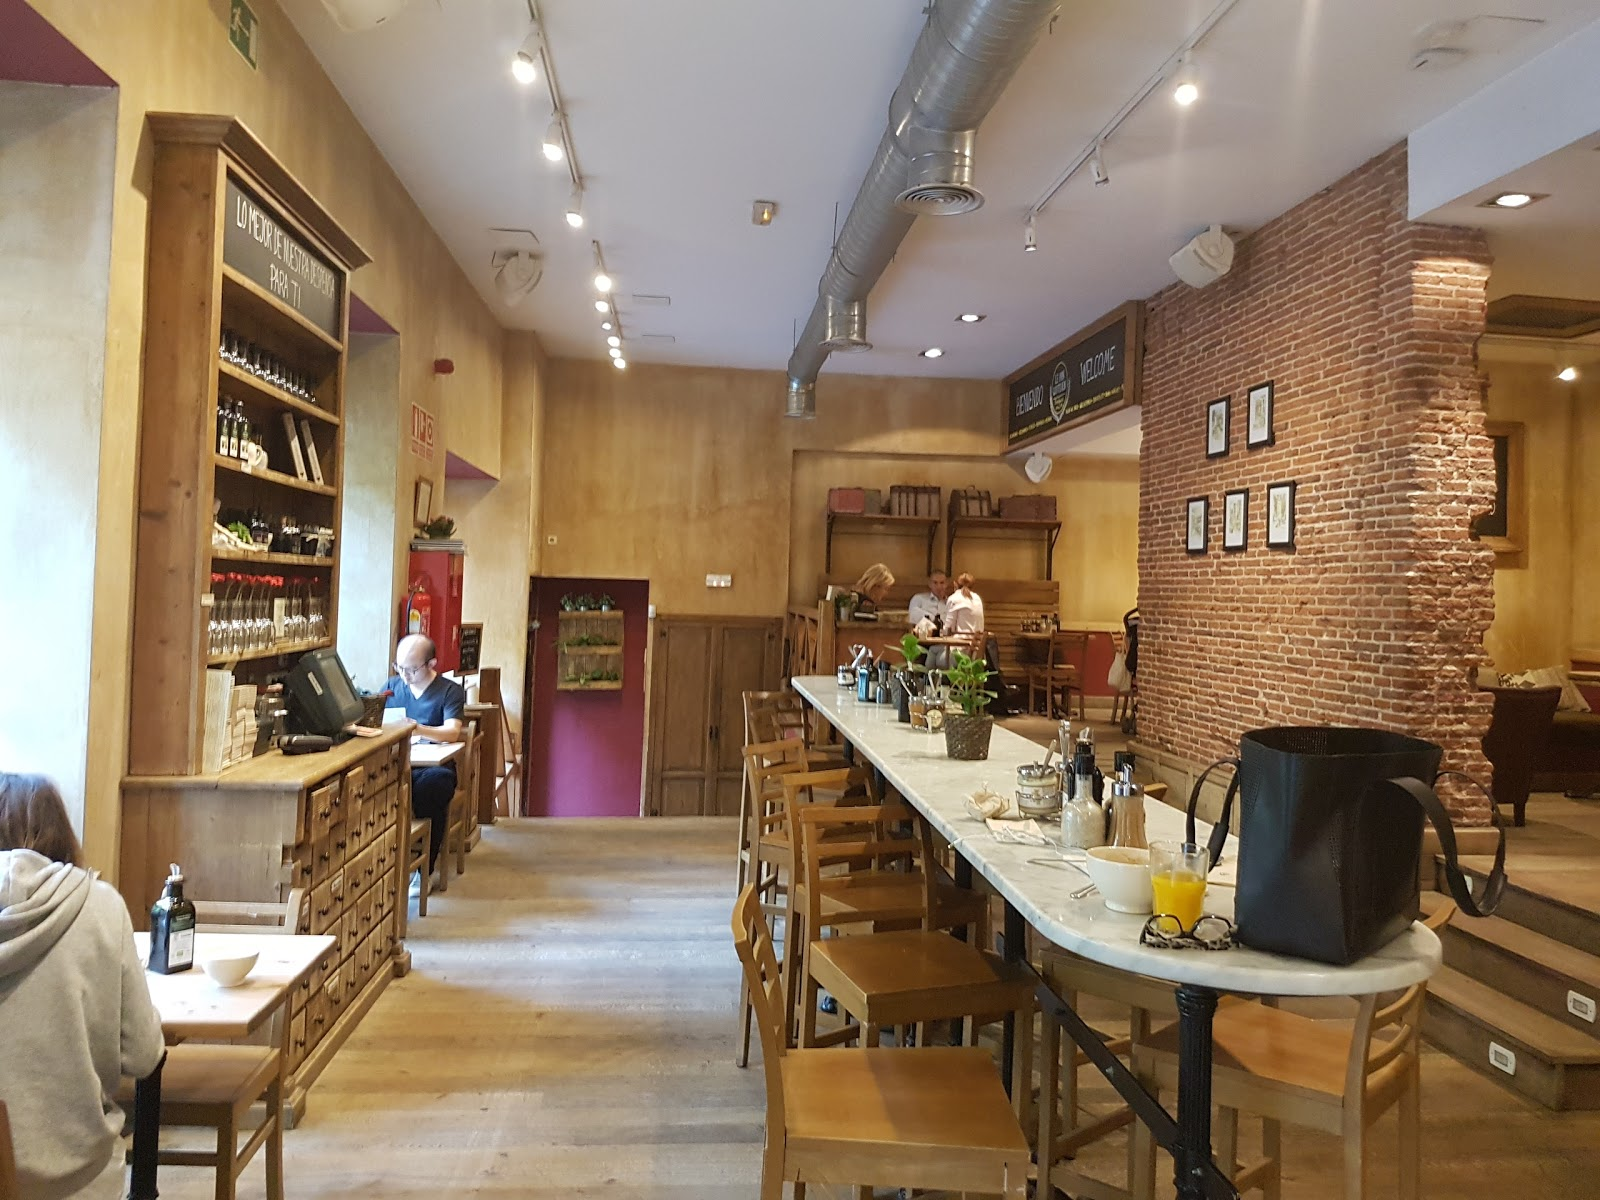 Le Pain Quotidien Serrano: A Work-Friendly Place in Madrid